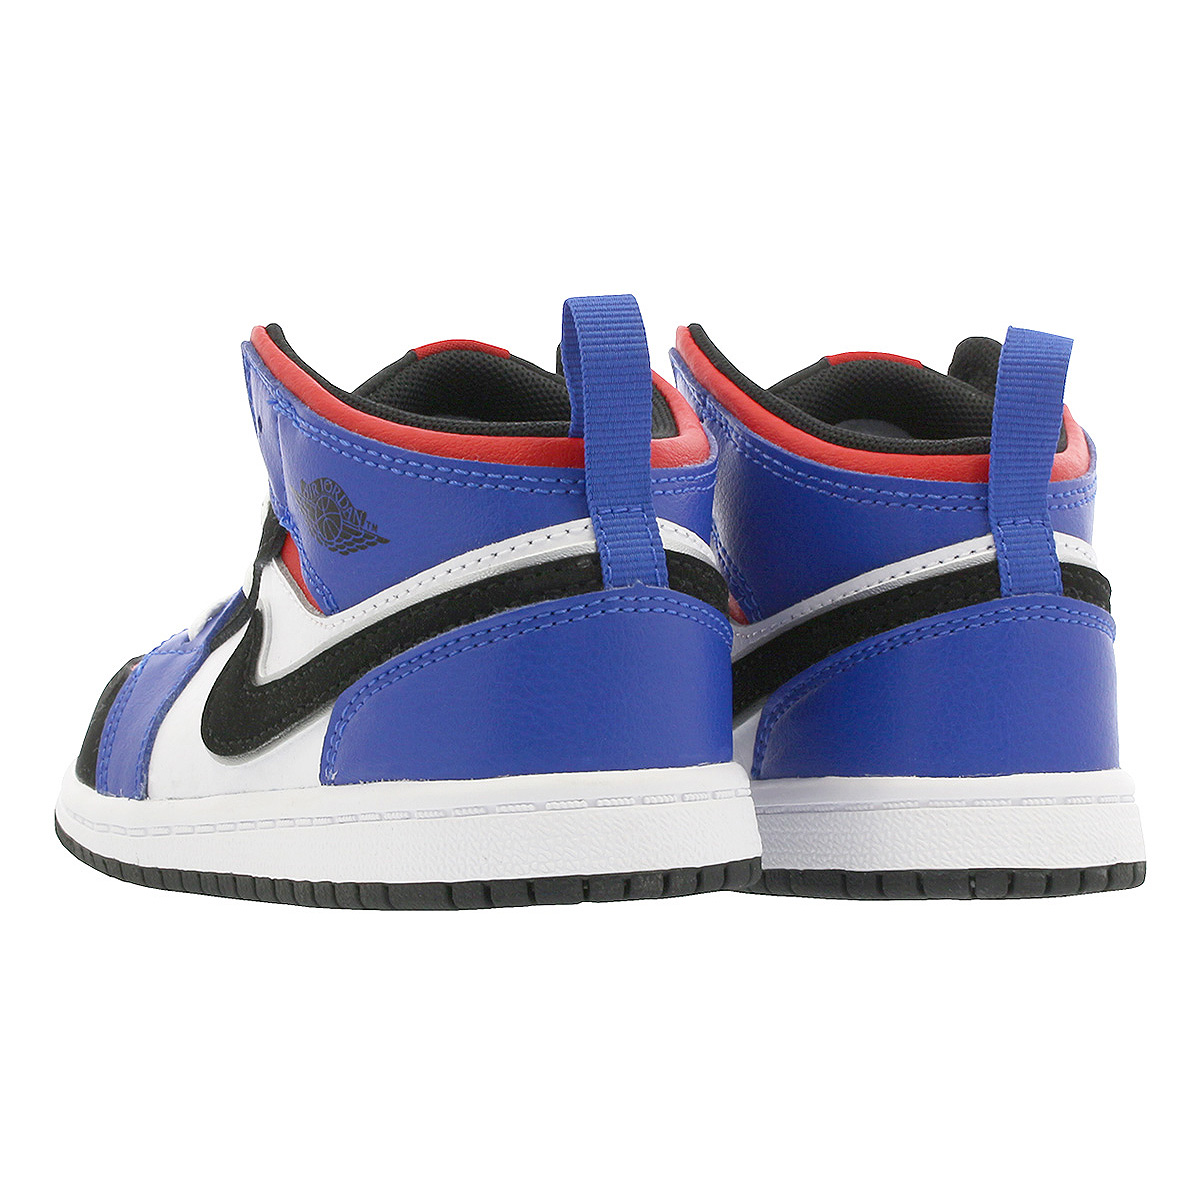 2ff14e0d5616 LOWTEX PLUS  NIKE AIR JORDAN 1 MID BT Nike Air Jordan 1 mid BT ...